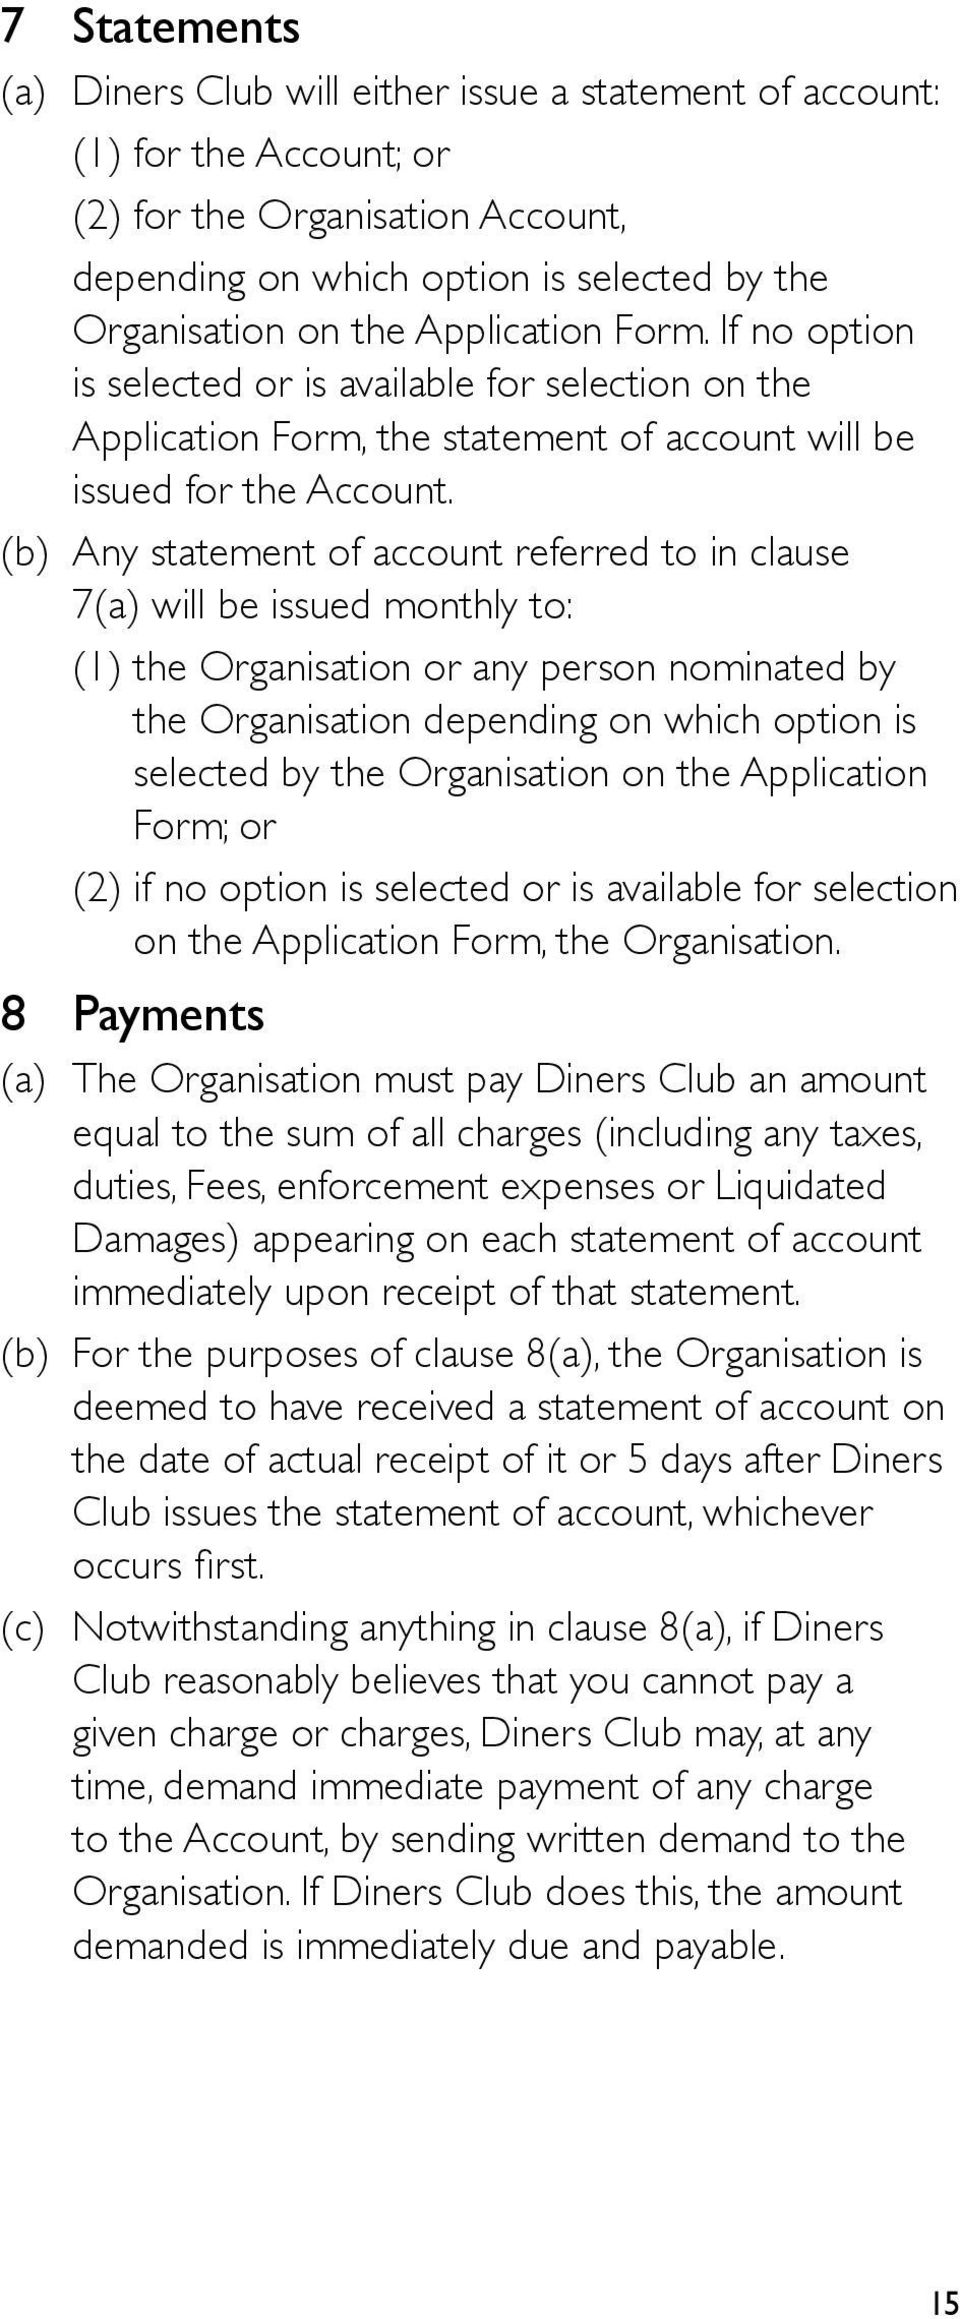 (b) Any statement of account referred to in clause 7(a) will be issued monthly to: (1) the Organisation or any person nominated by the Organisation depending on which option is selected by the